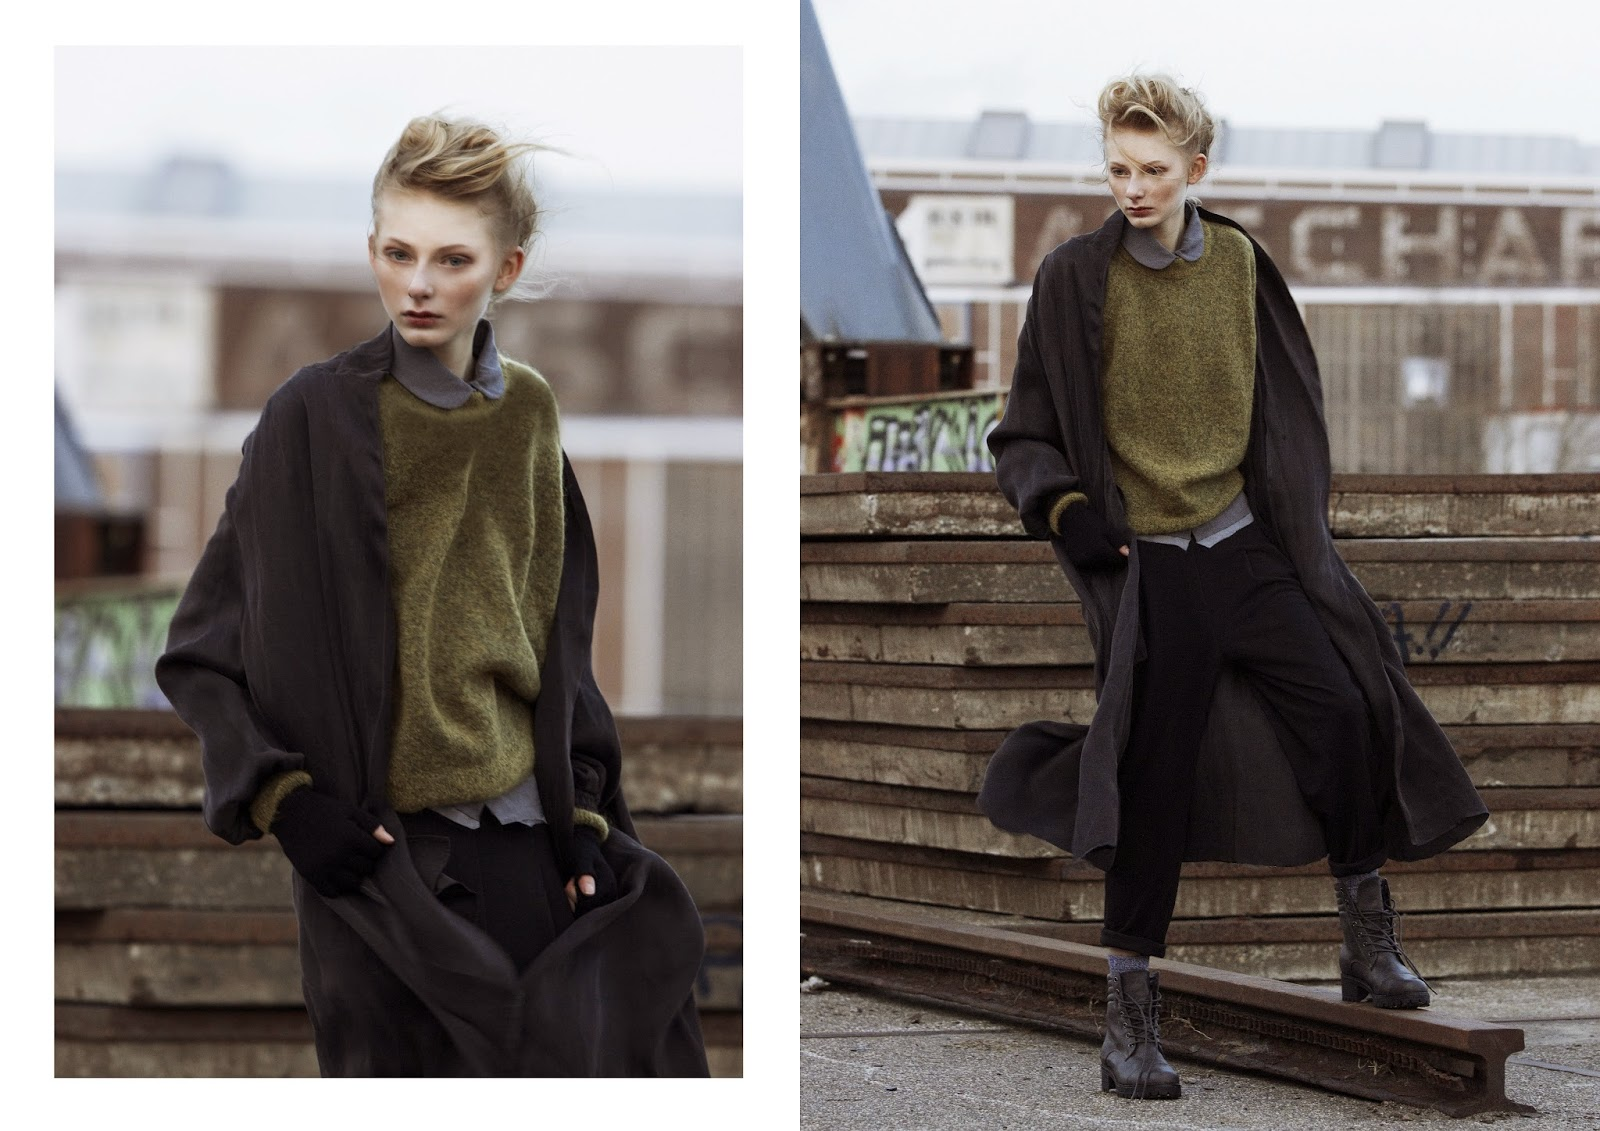 Styling | Industrial grunge